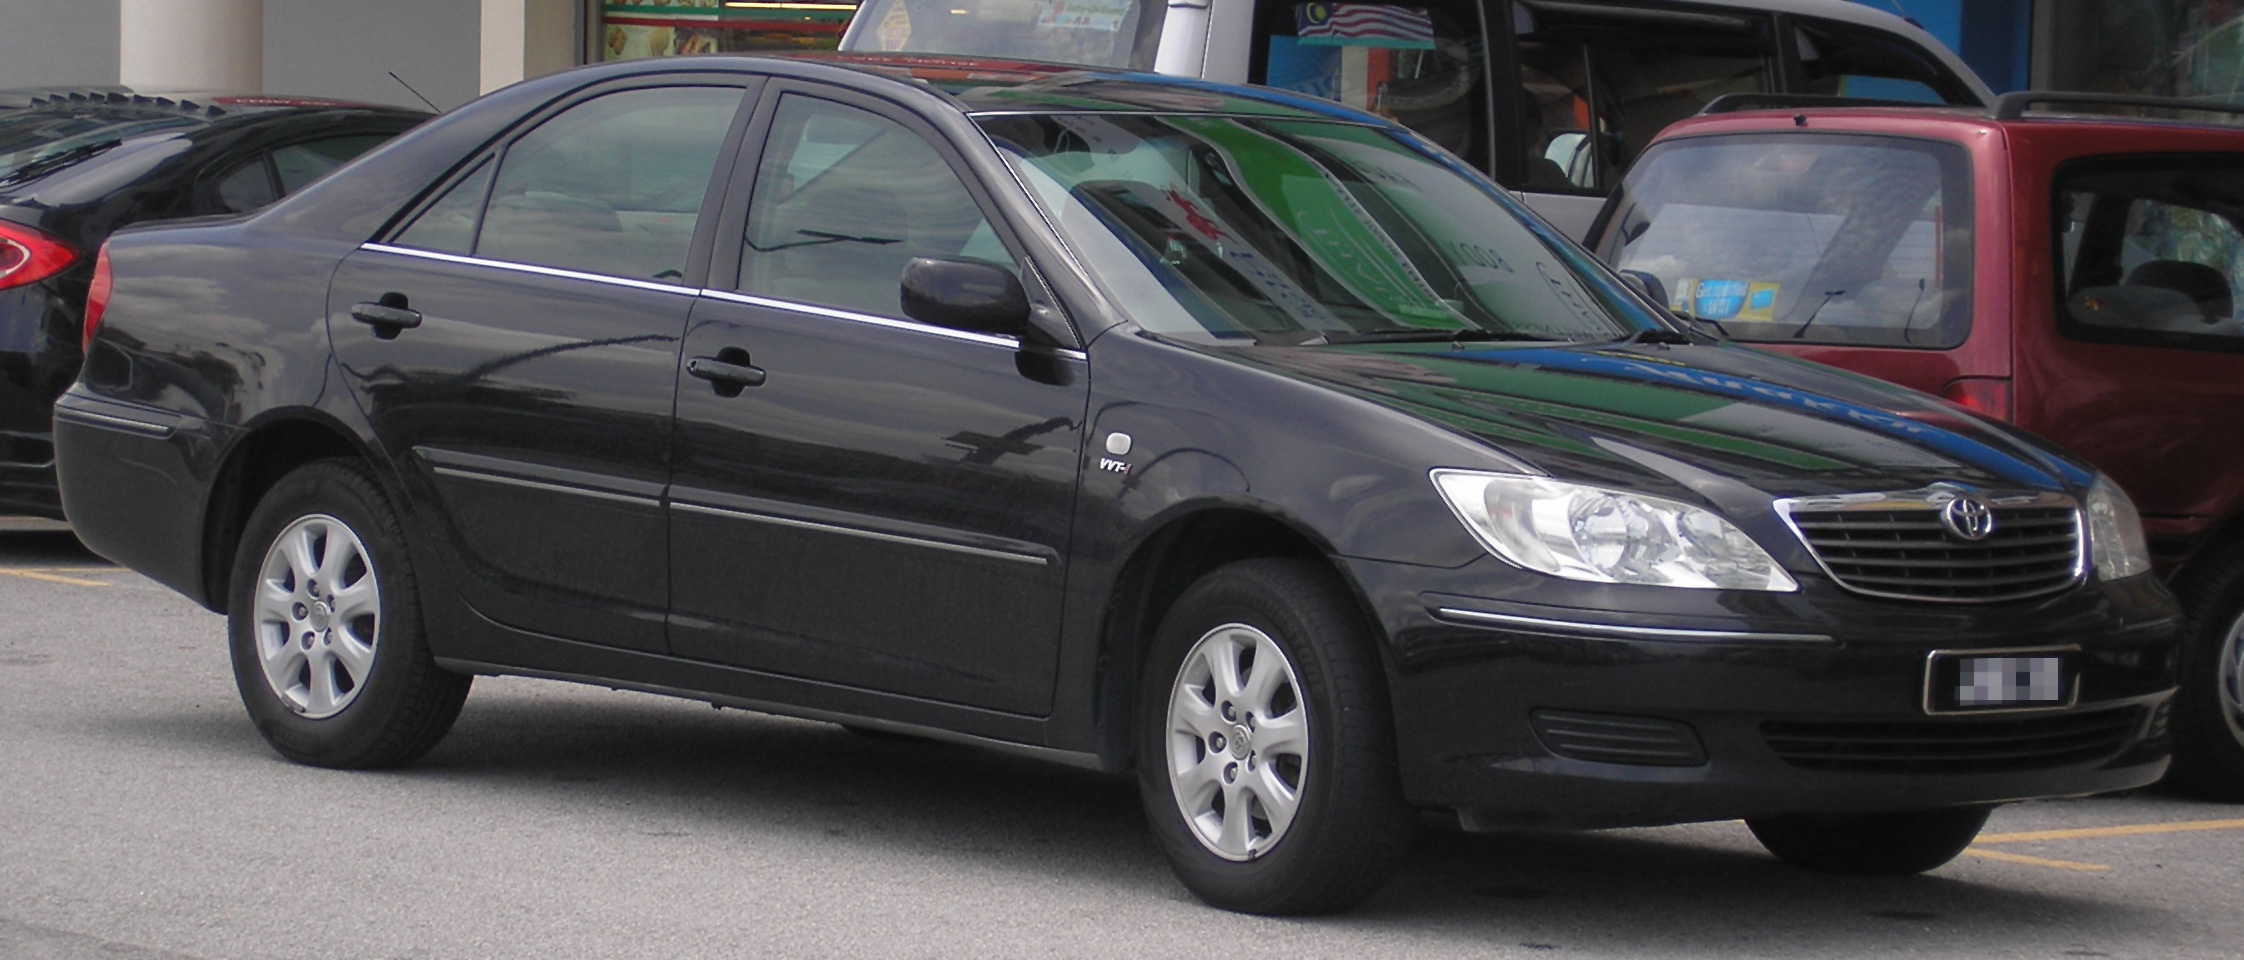 File Toyota Camry Fifth Generation Front Serdang Jpg